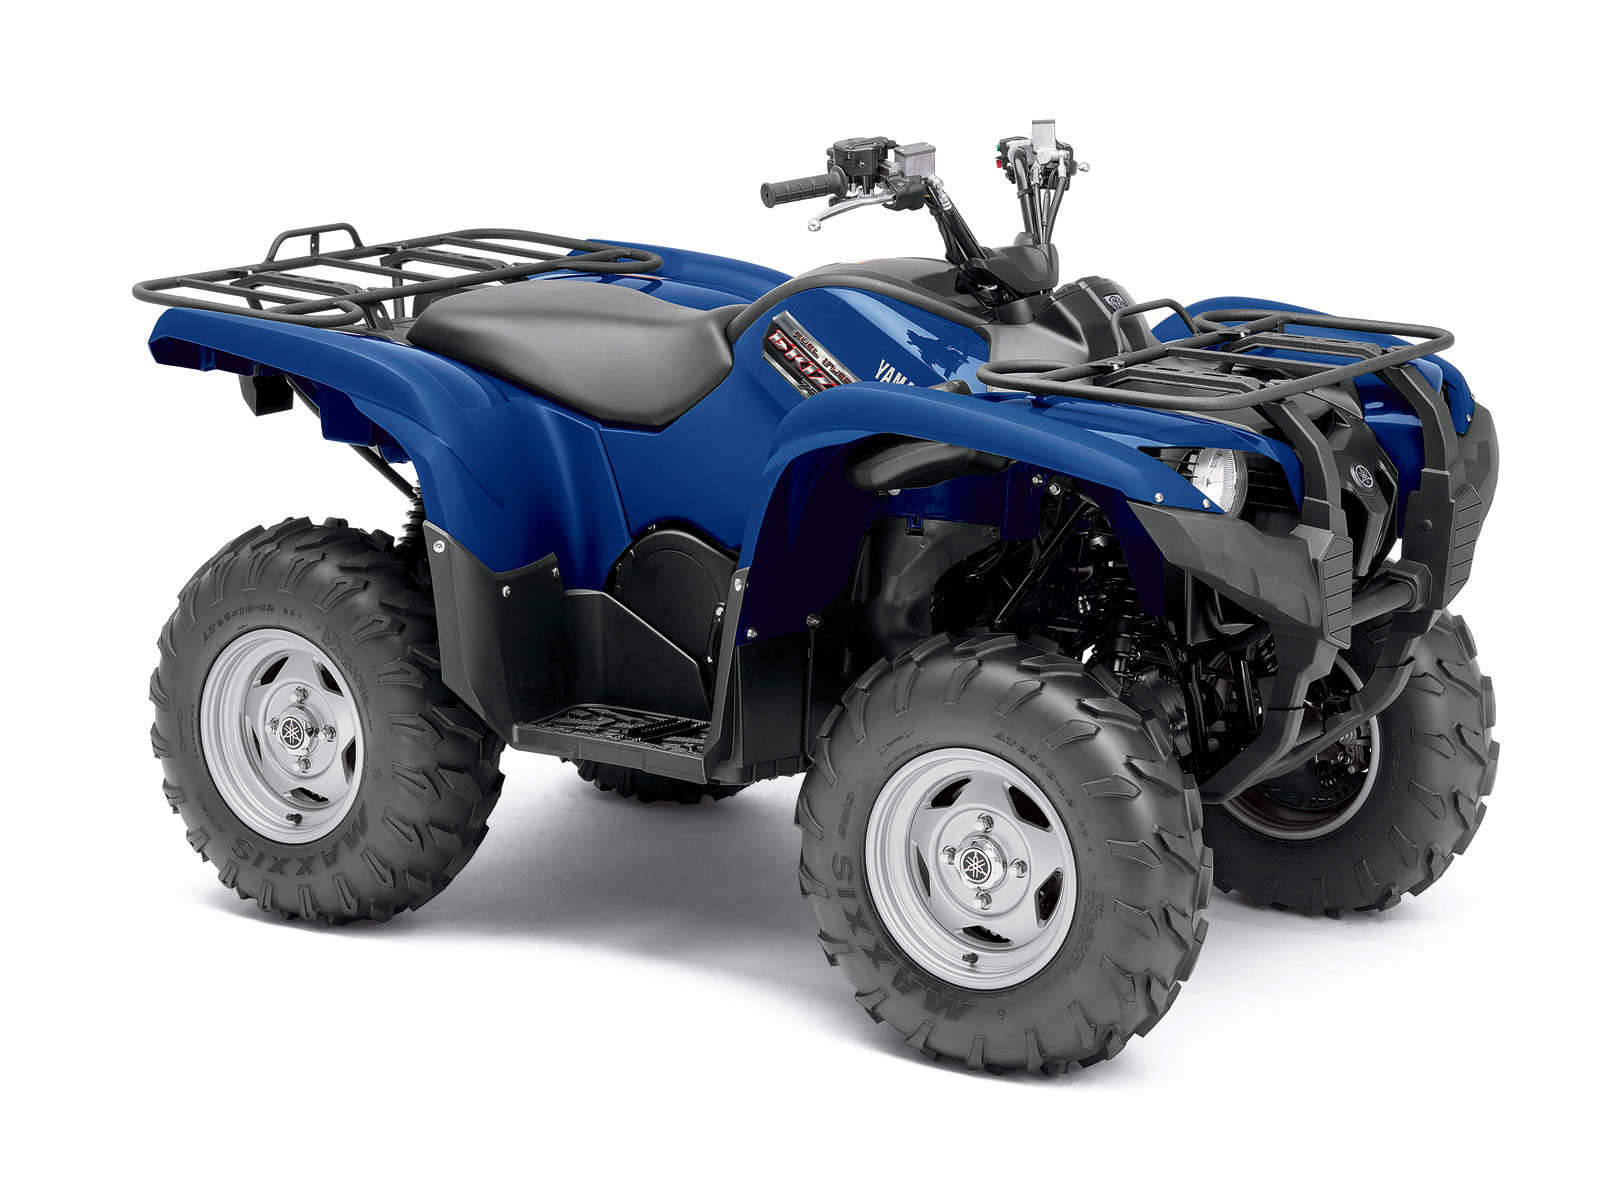 2012 yamaha grizzly 700fi auto 4x4 atv insurance information. Black Bedroom Furniture Sets. Home Design Ideas